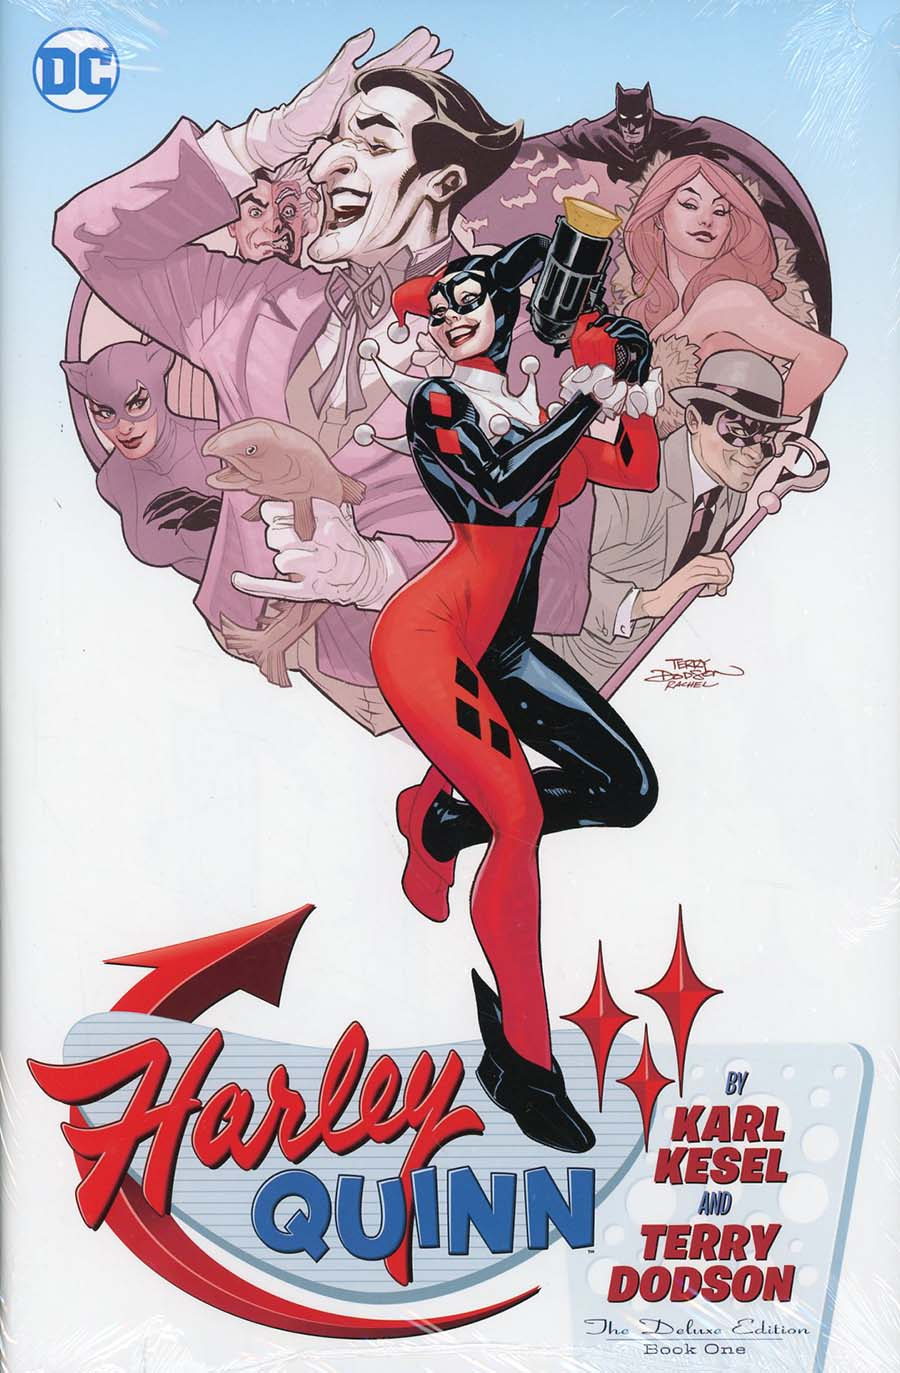 Harley Quinn By Karl Kesel & Terry Dodson Deluxe Edition Book 1 HC